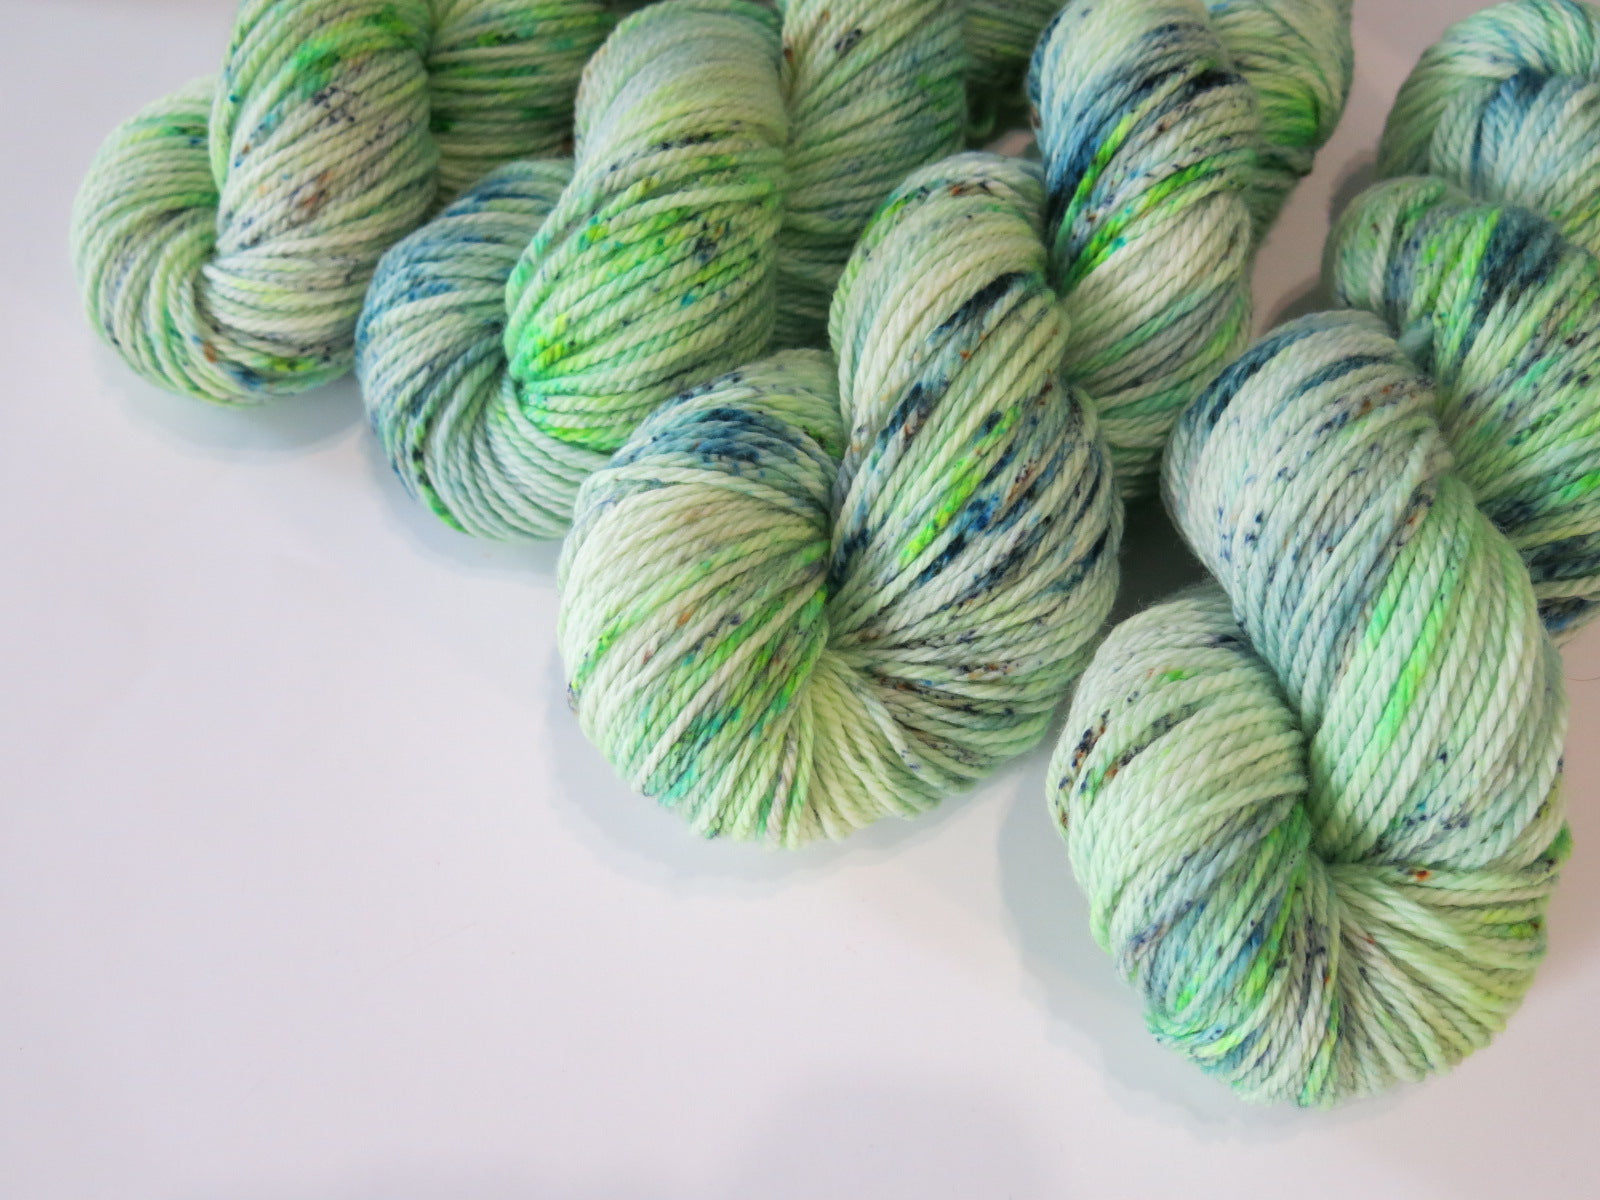 green speckled aran yarn for weaving, knitting and crochet